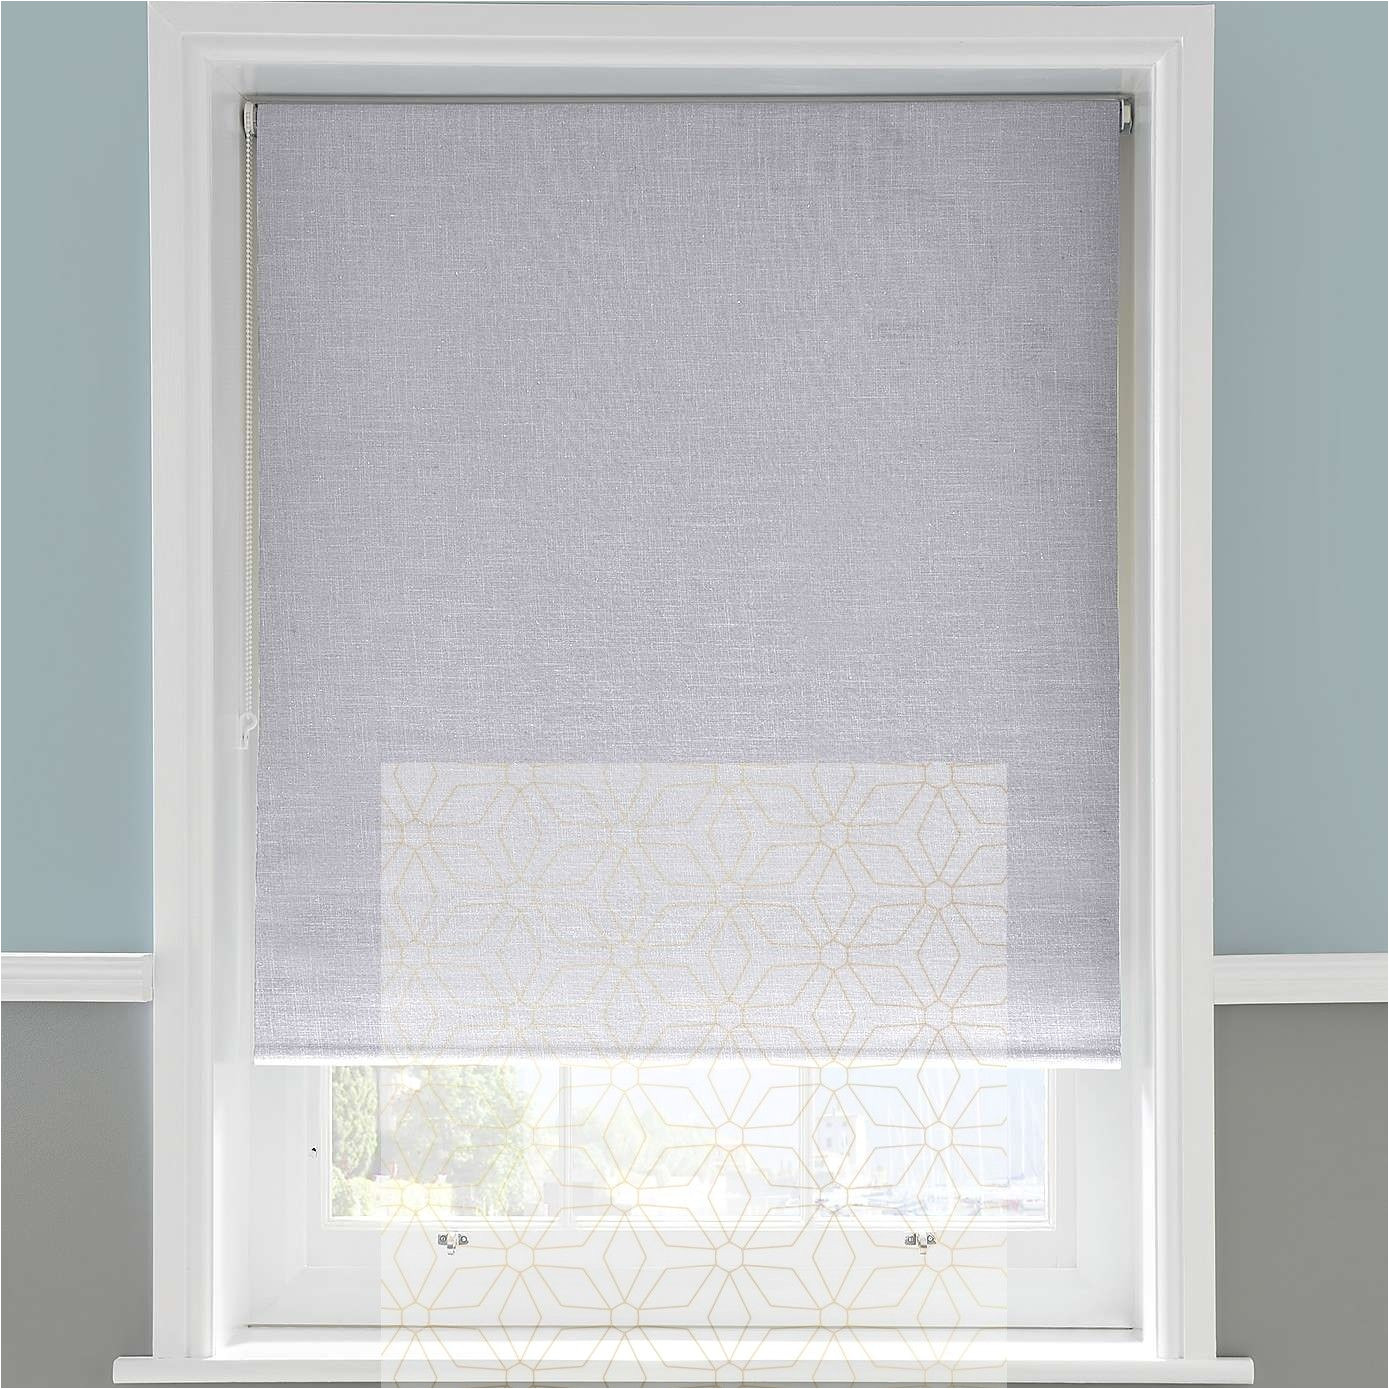 5 easy and cheap cool tips modern blinds awesome living room blinds white blackout blinds how to make fabric blinds valances blinds for windows bathroom